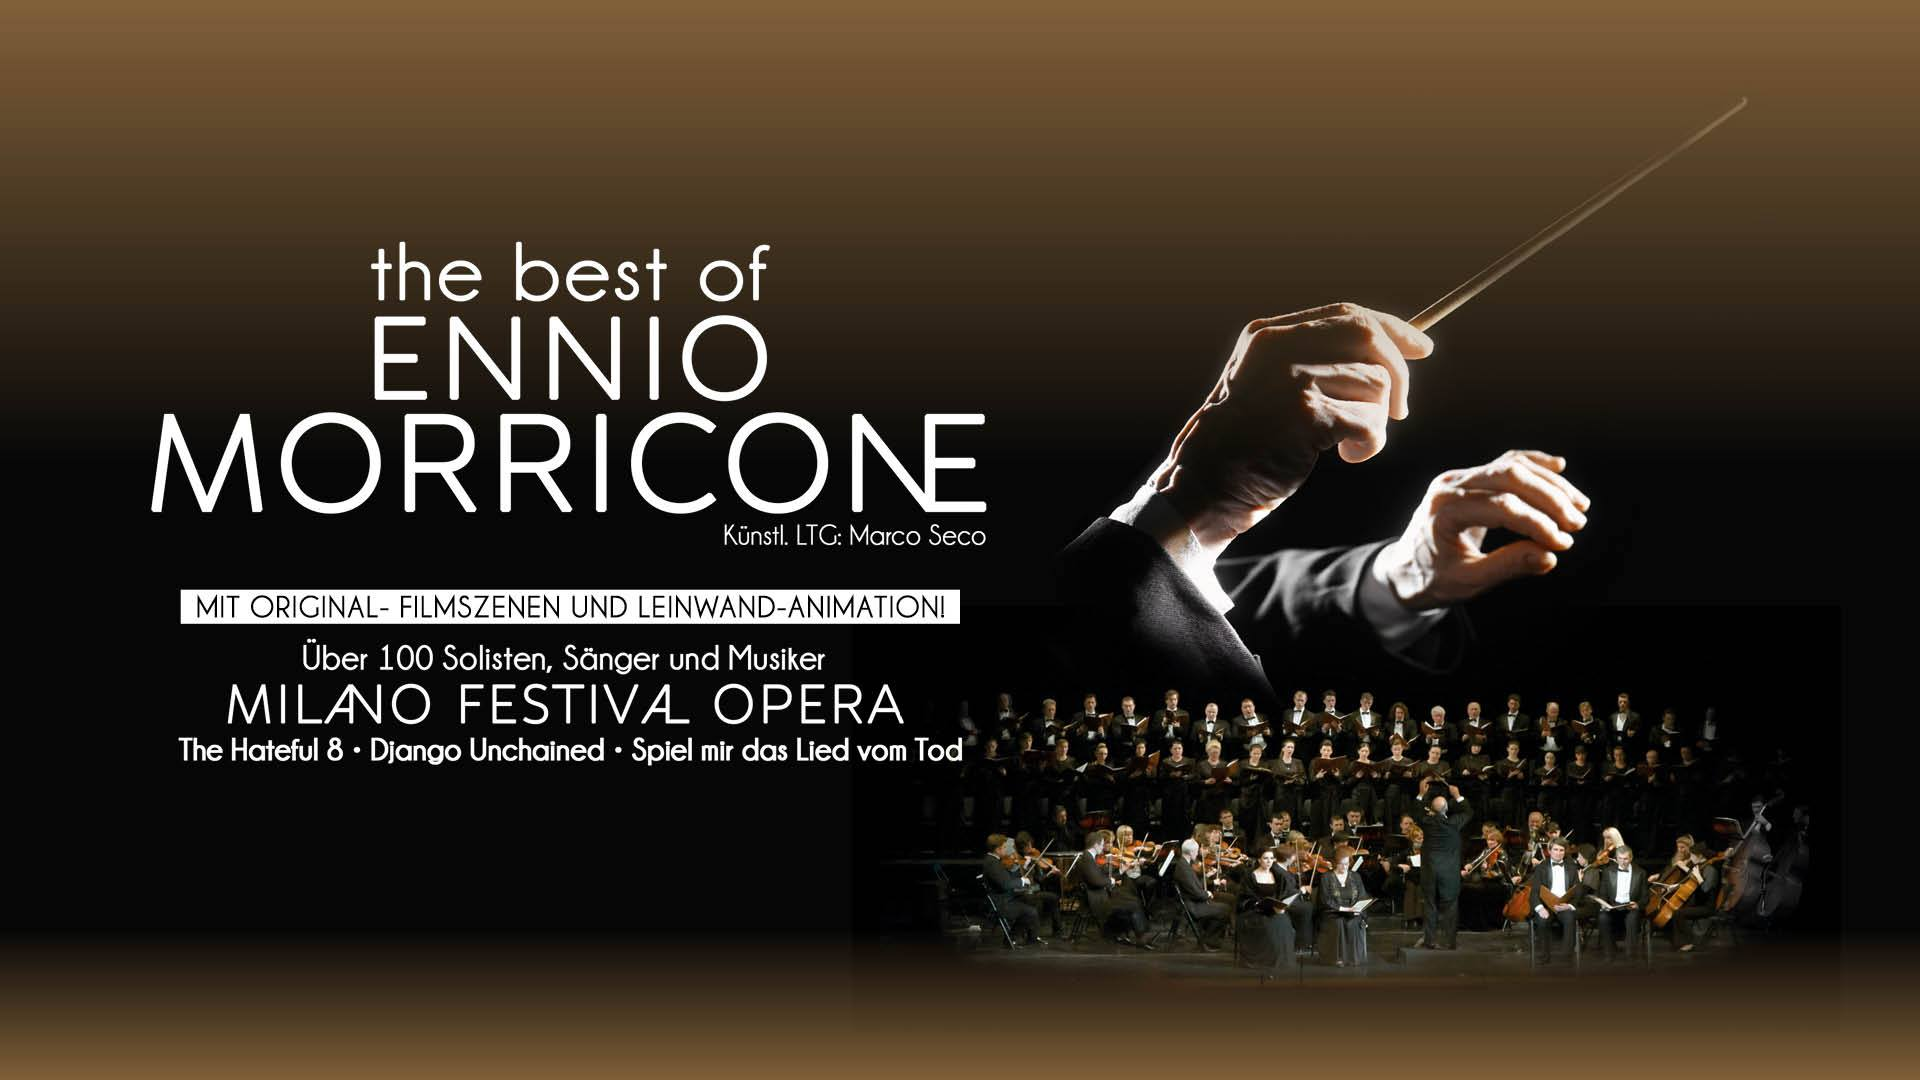 L'uomo dell'armonica torna in Svizzera in «The Best of Ennio Morricone» nel 2022